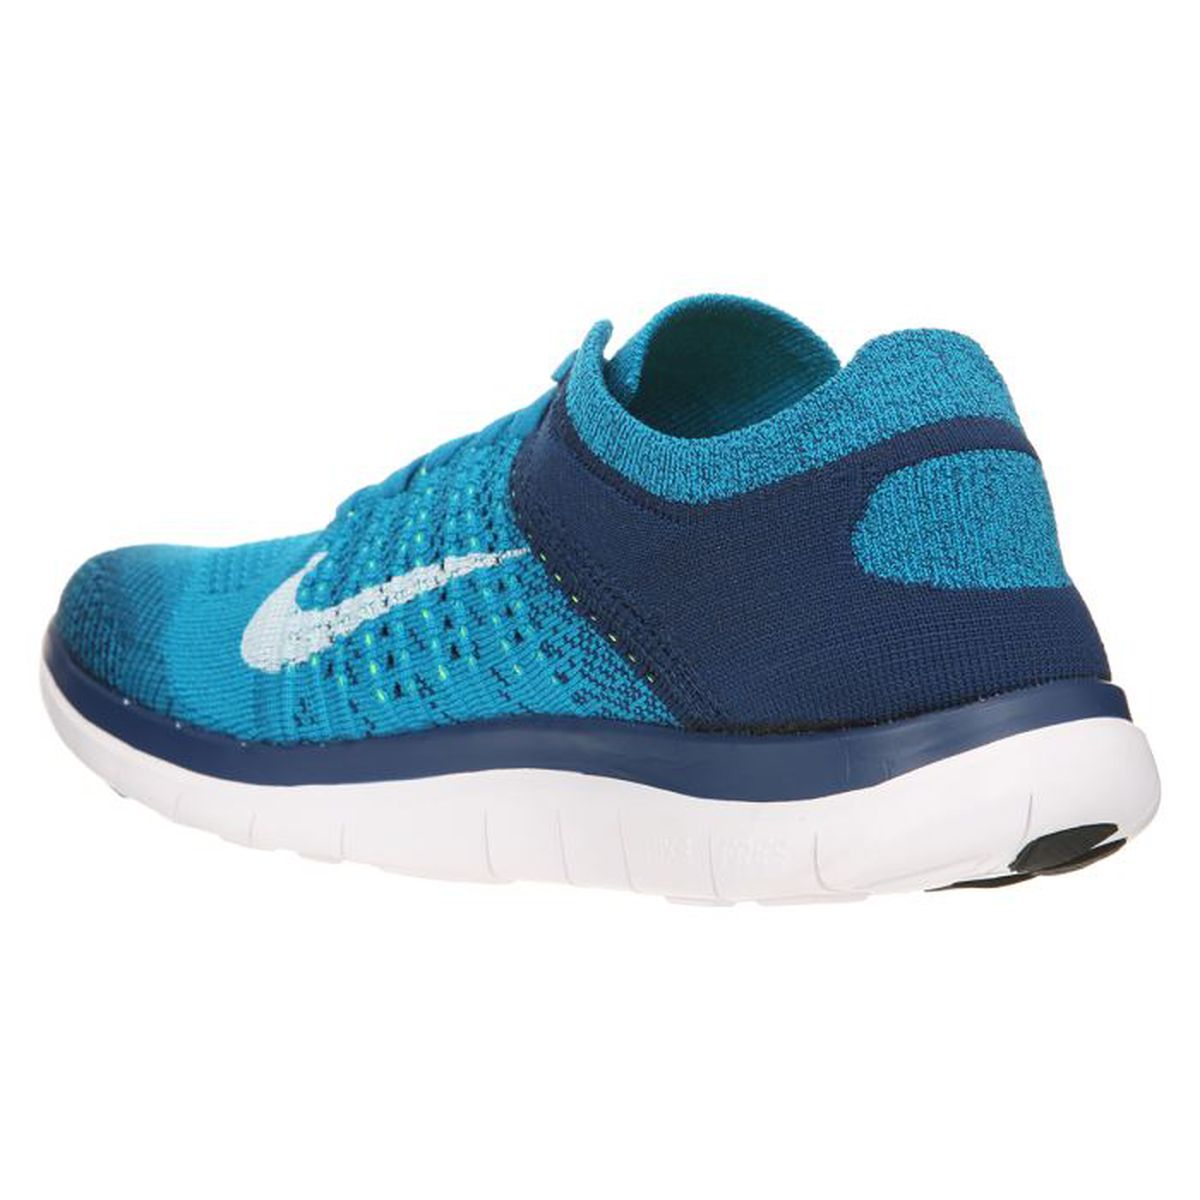 best loved c504f 52542 NIKE Chaussures running Free Run 4.0 Flyknit Homme - Prix pas cher -  Cdiscount